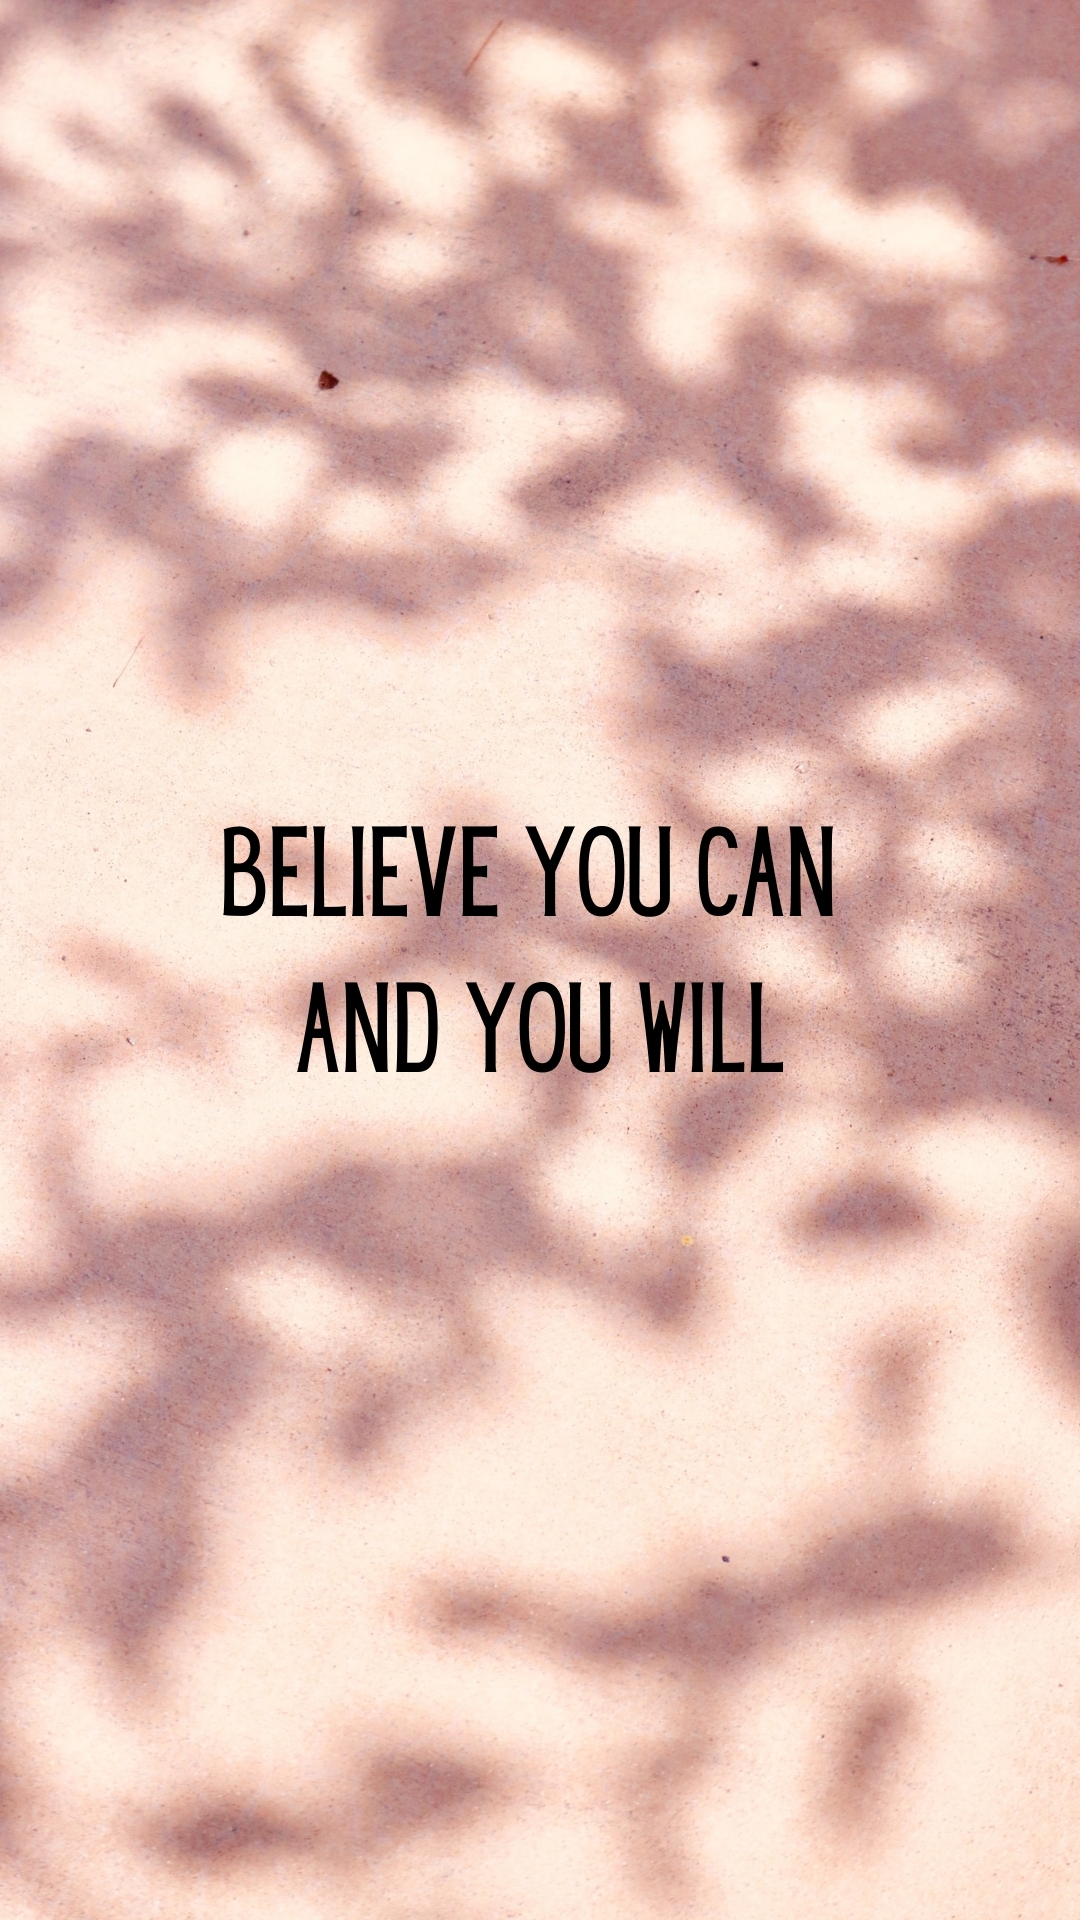 Quotes Wallpaper Aesthetic: Believe You Can And You Will